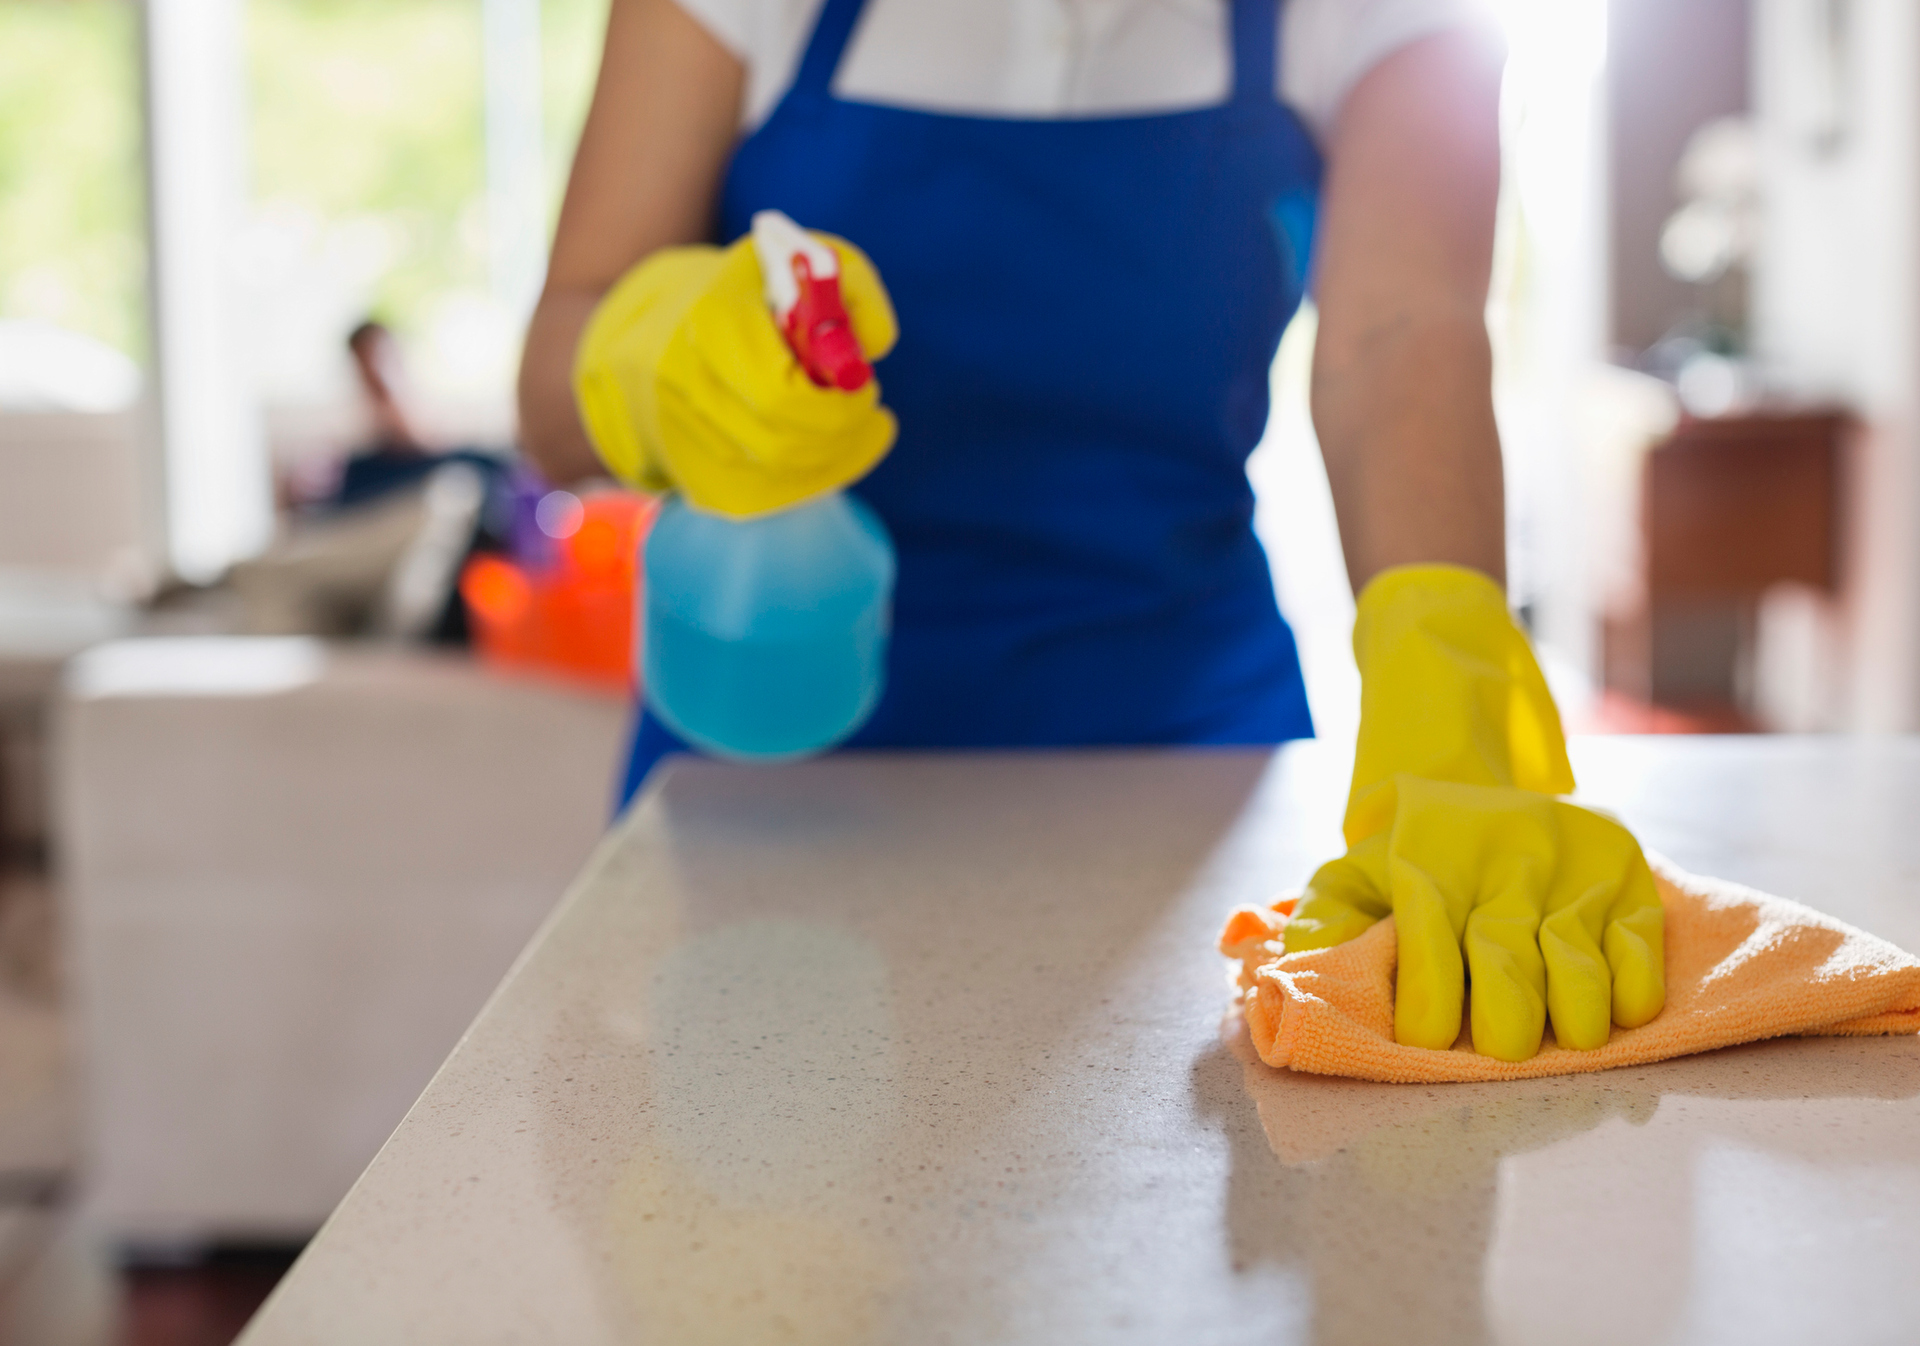 Confessions of a cleaner: Weird and strange items left behind revealed